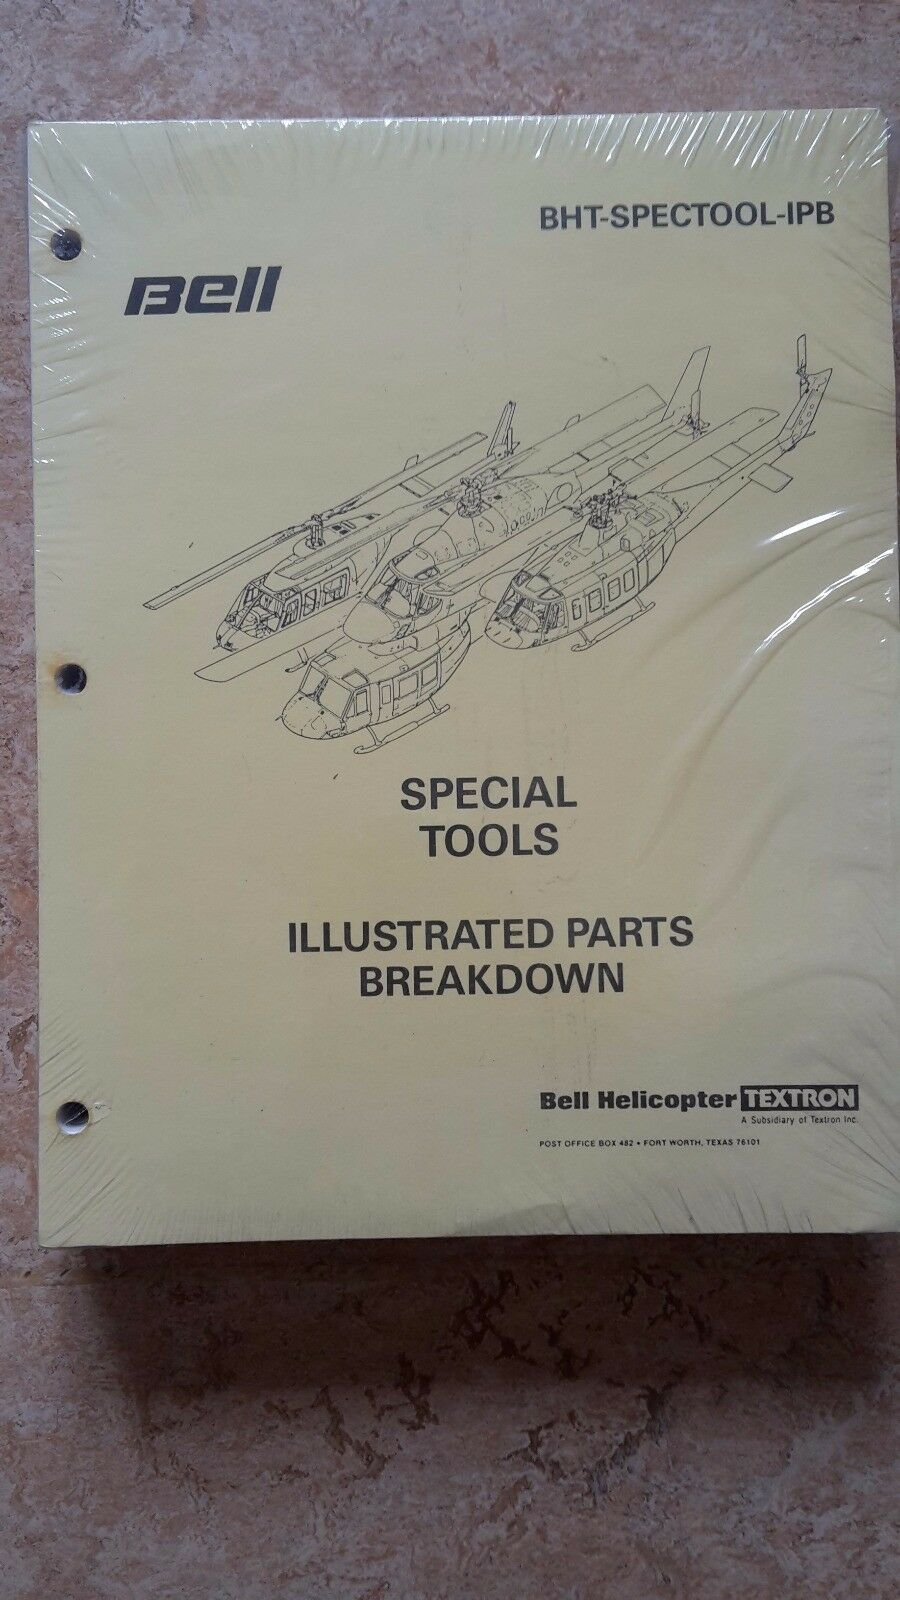 Miraculous Bell Tools Illustrated Parts Breakdown Textron Manual Helicopter Wiring Cloud Staixuggs Outletorg